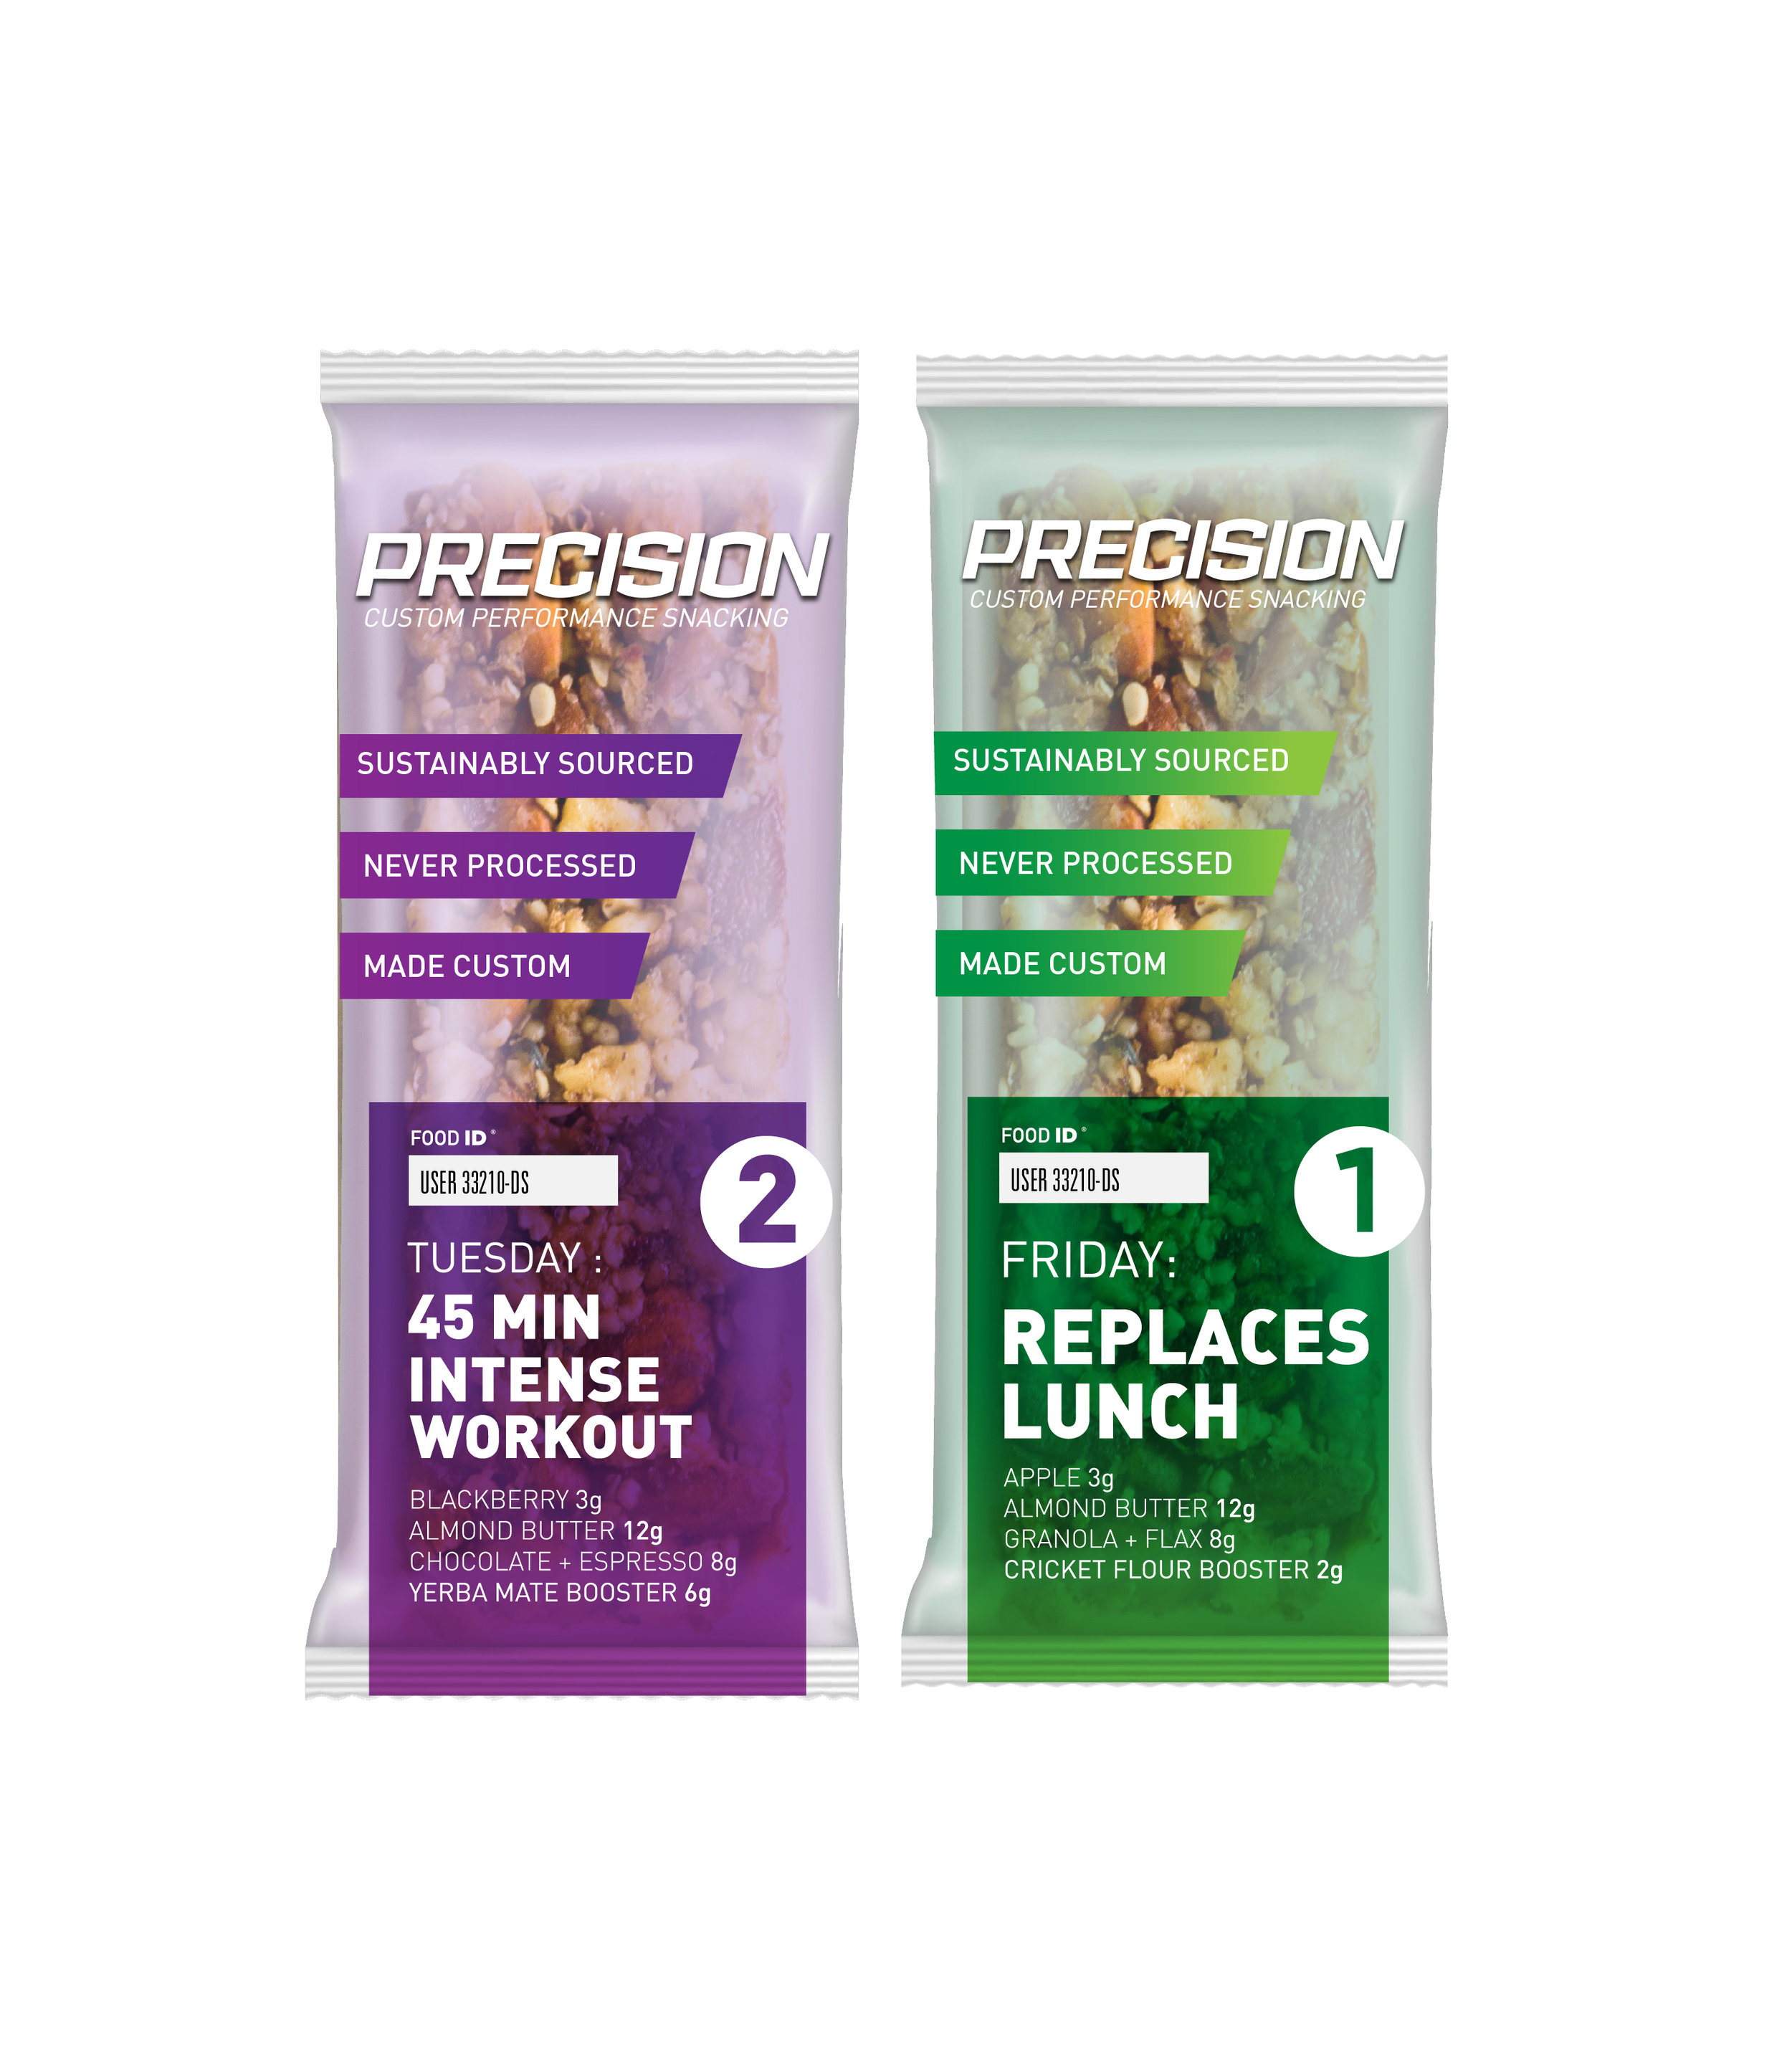 Precision Bar    Precision Bar is packed with all-natural energy, targeted to your performance goals -- no one else's. Made with whole food ingredients, our bars hit you with exactly what you need in a convenient on-the-go package.